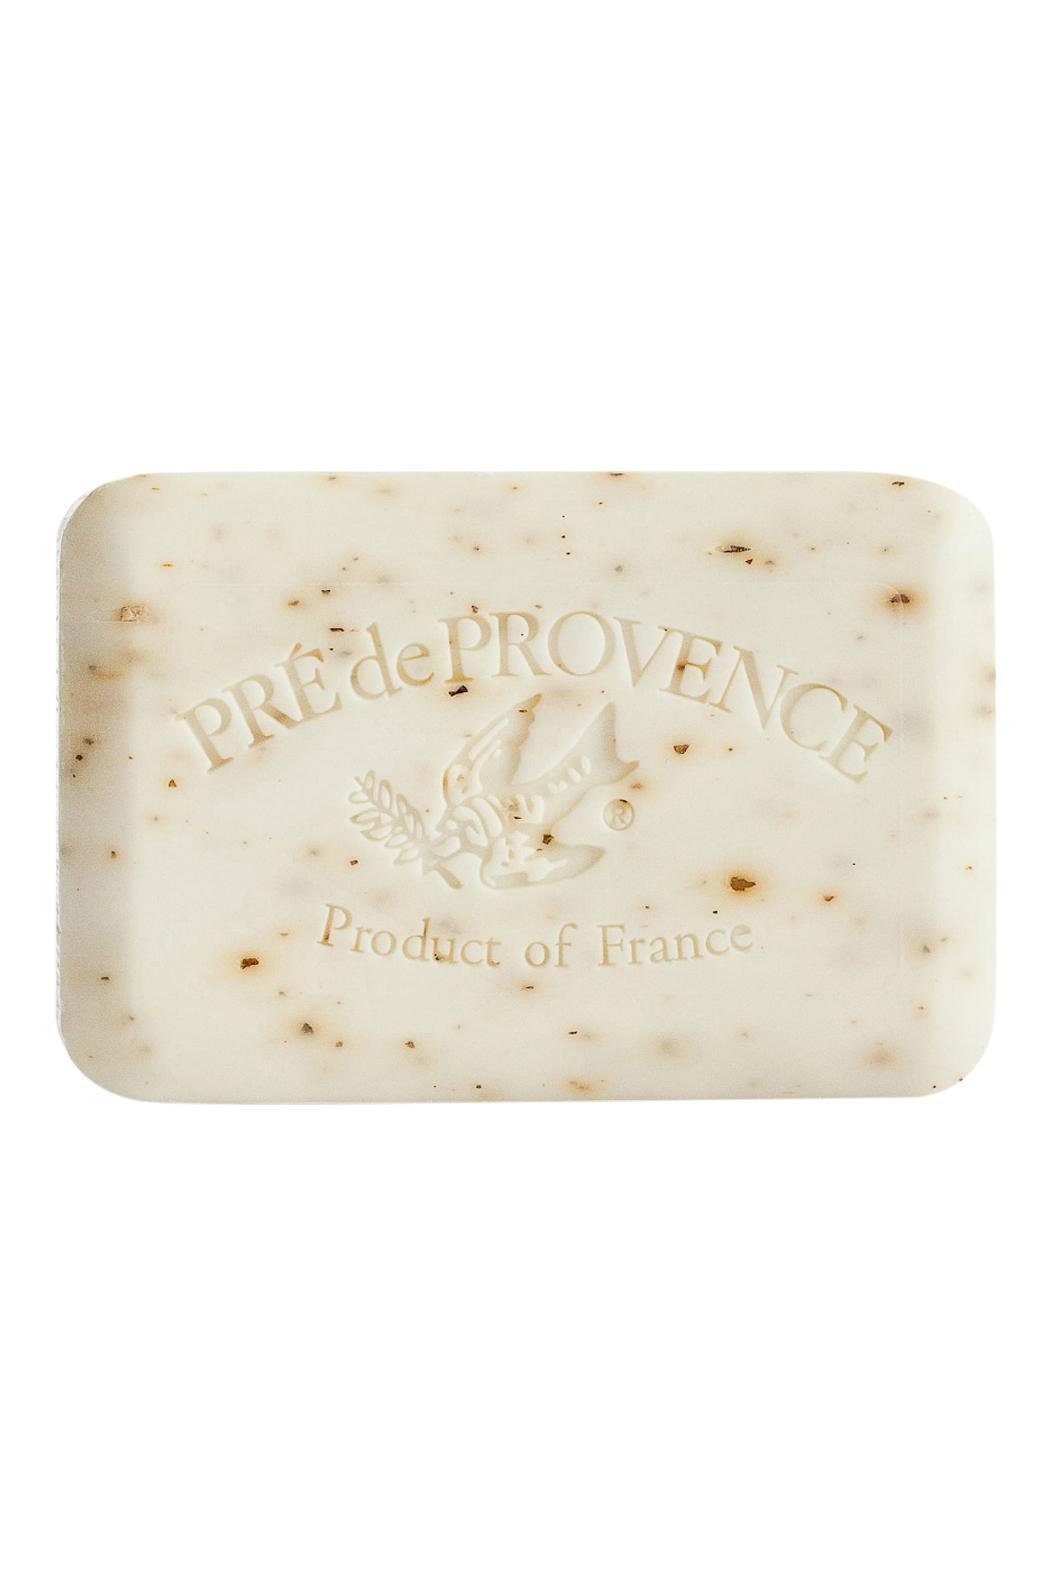 Pre de Provence White Gardenia Bar Soap - Main Image